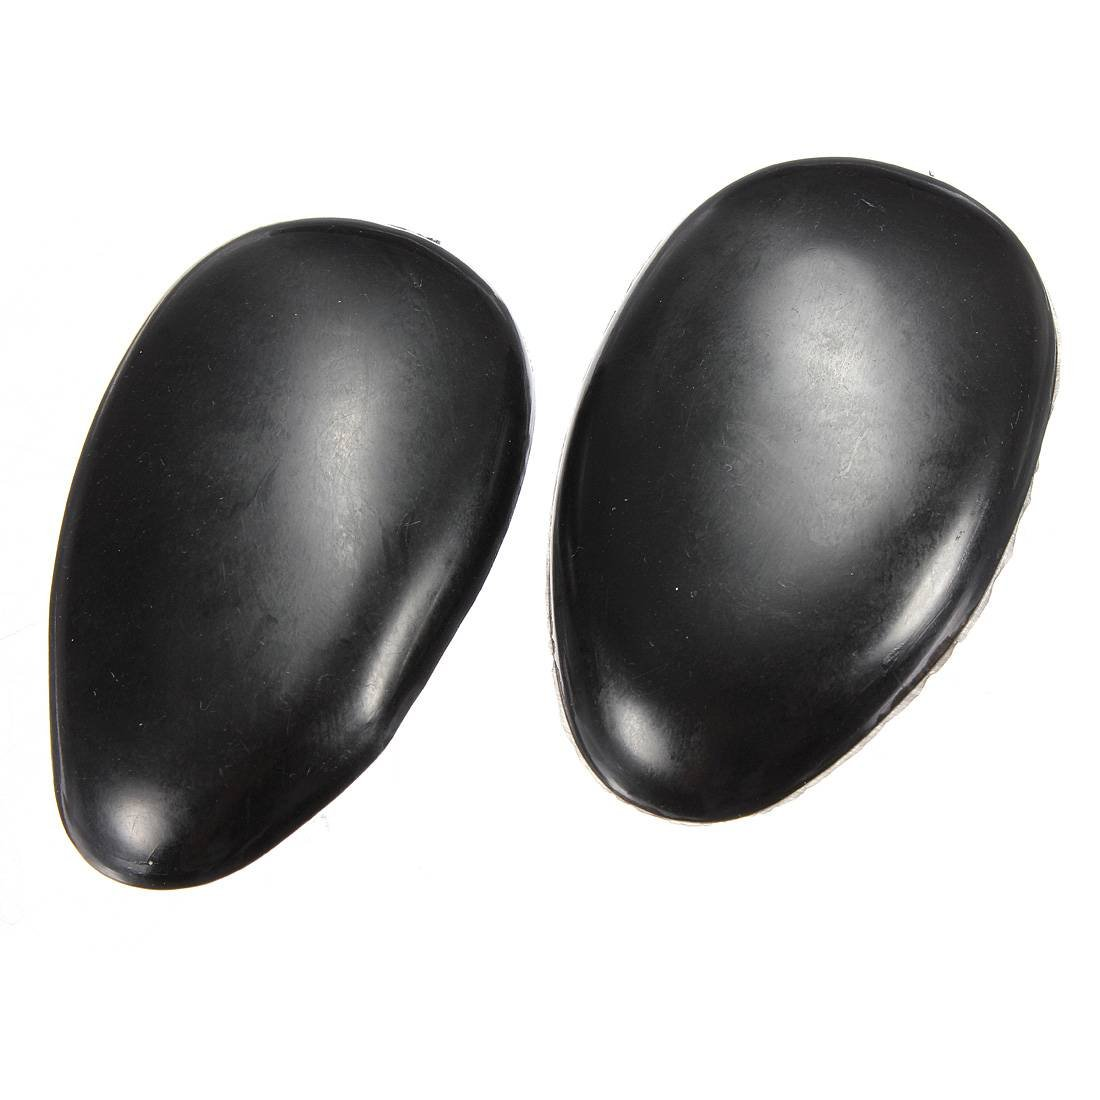 JEYL Hot New 1 Pair Black Plastic Hair Dye Color Coloring Ear Cover Shield Protect Tint Clip Hairdressing Salon Accessories